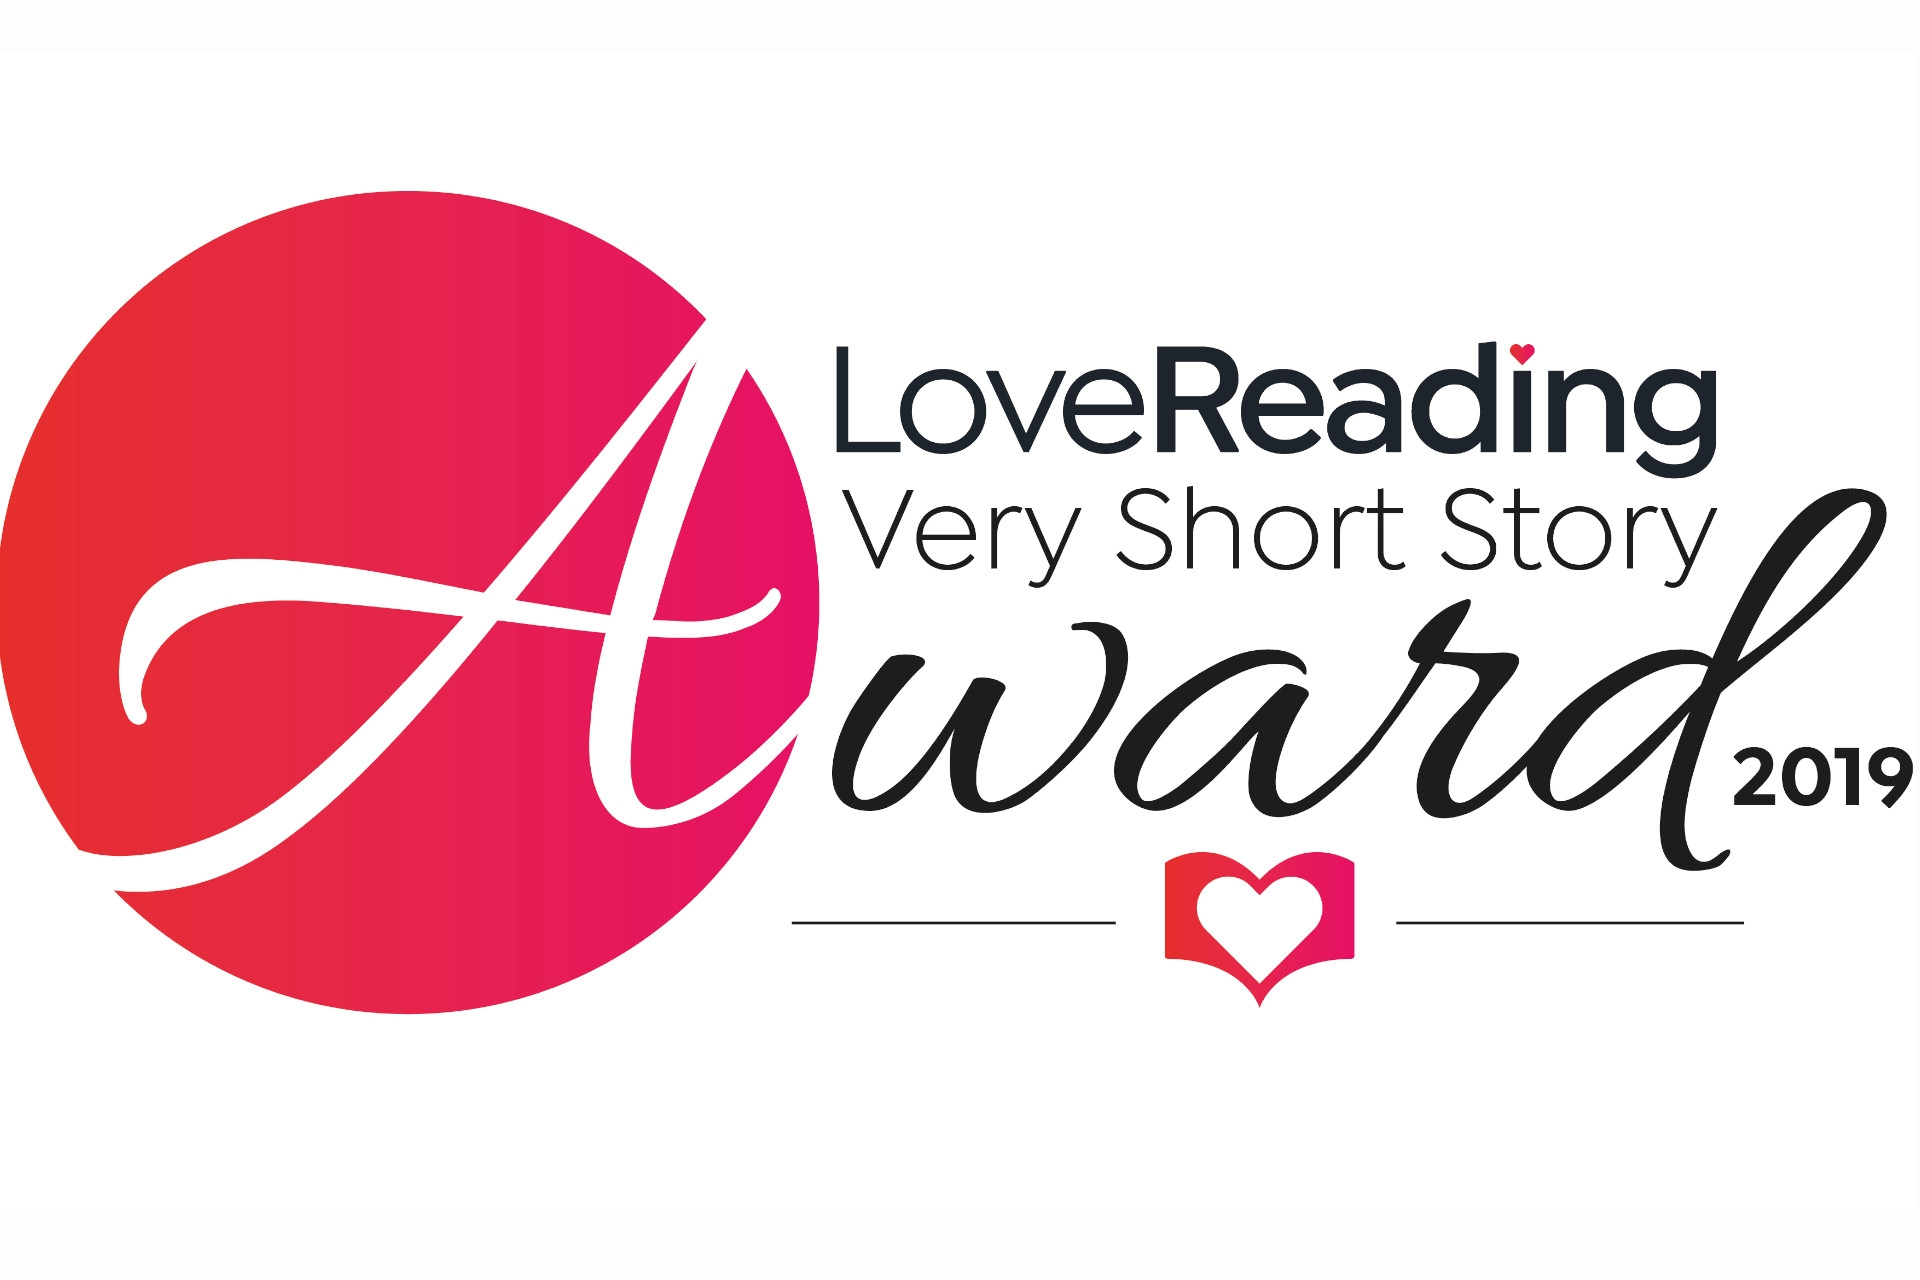 The LoveReading Very Short Story Award 2019